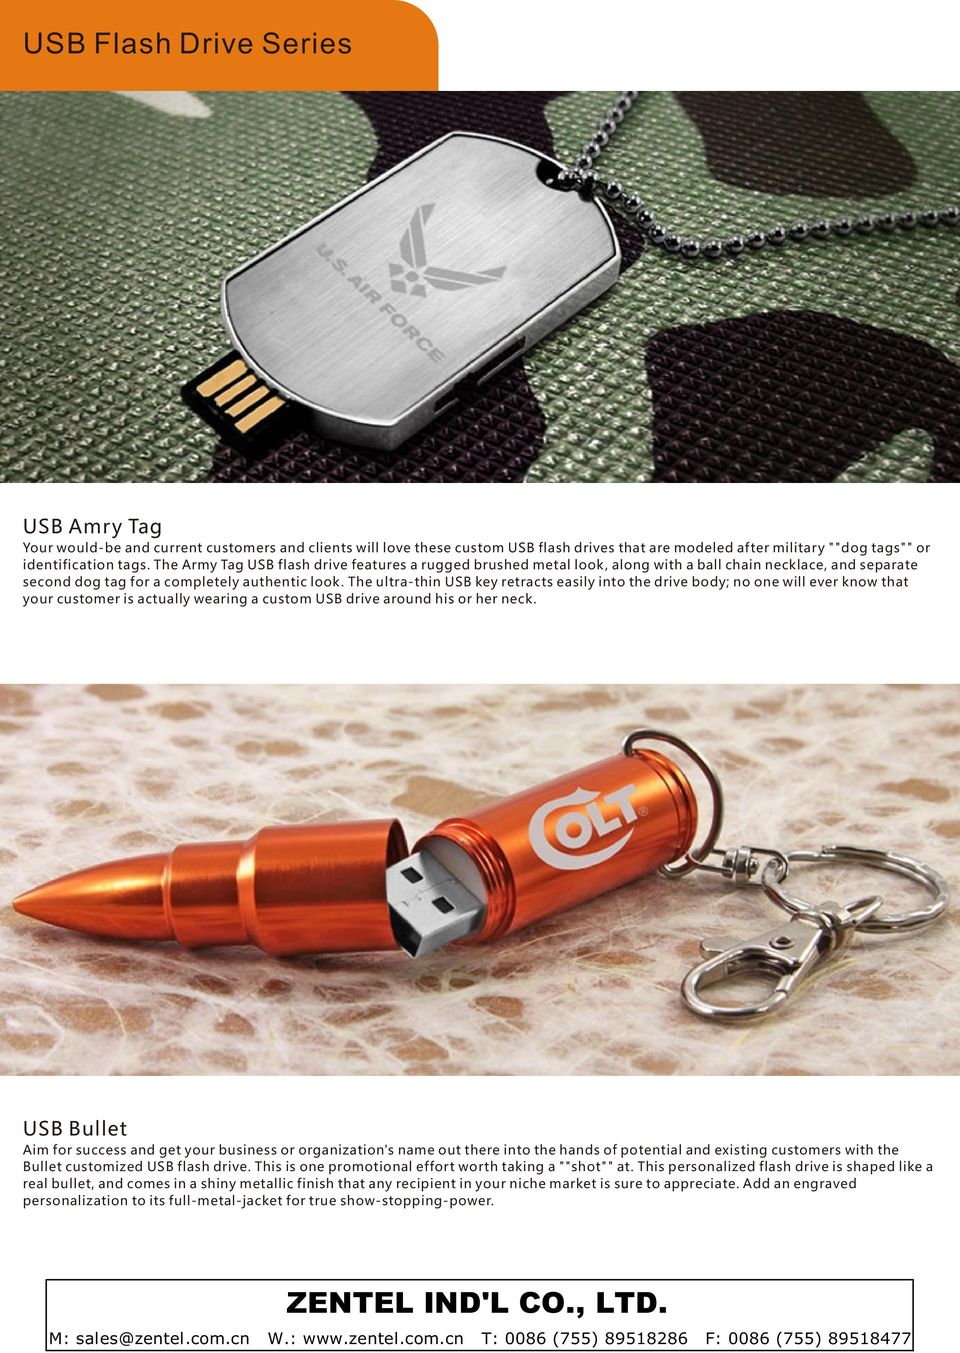 The ultra-thin USB key retracts easily into the drive body; no one will ever know that your customer is actually wearing a custom USB drive around his or her neck.